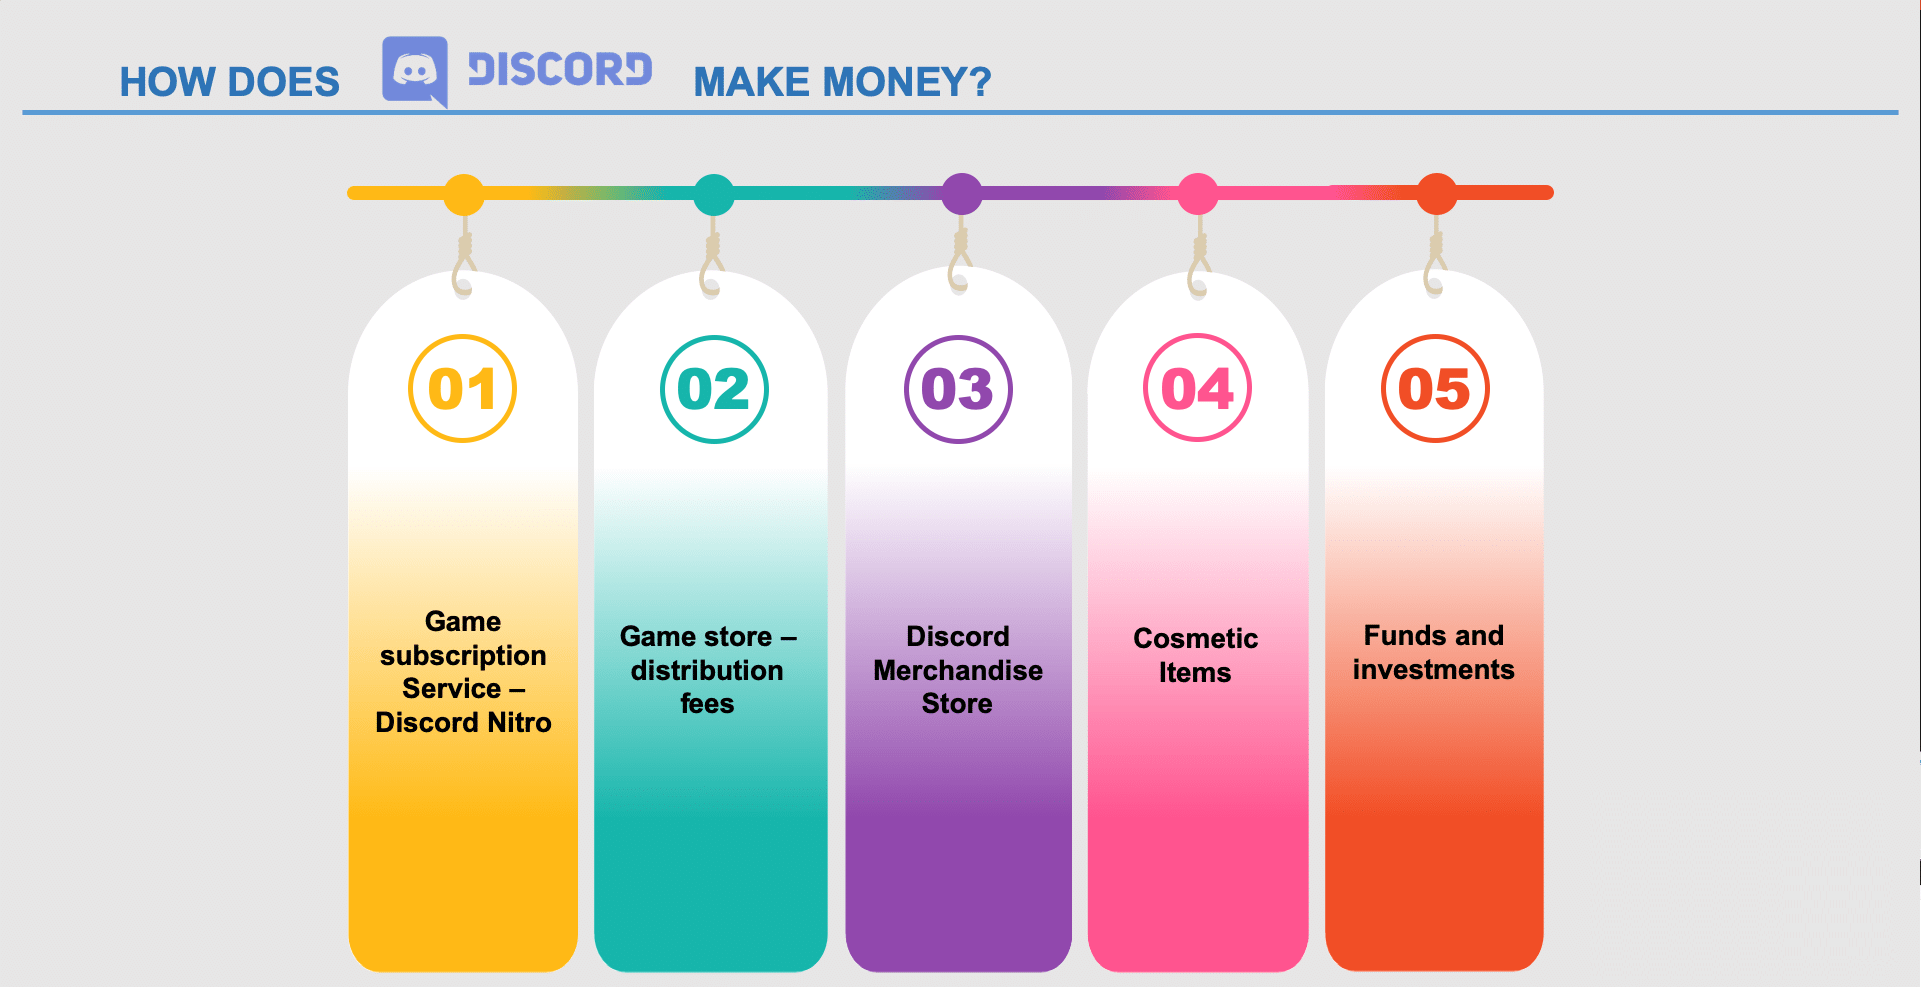 how does discord make money 2020